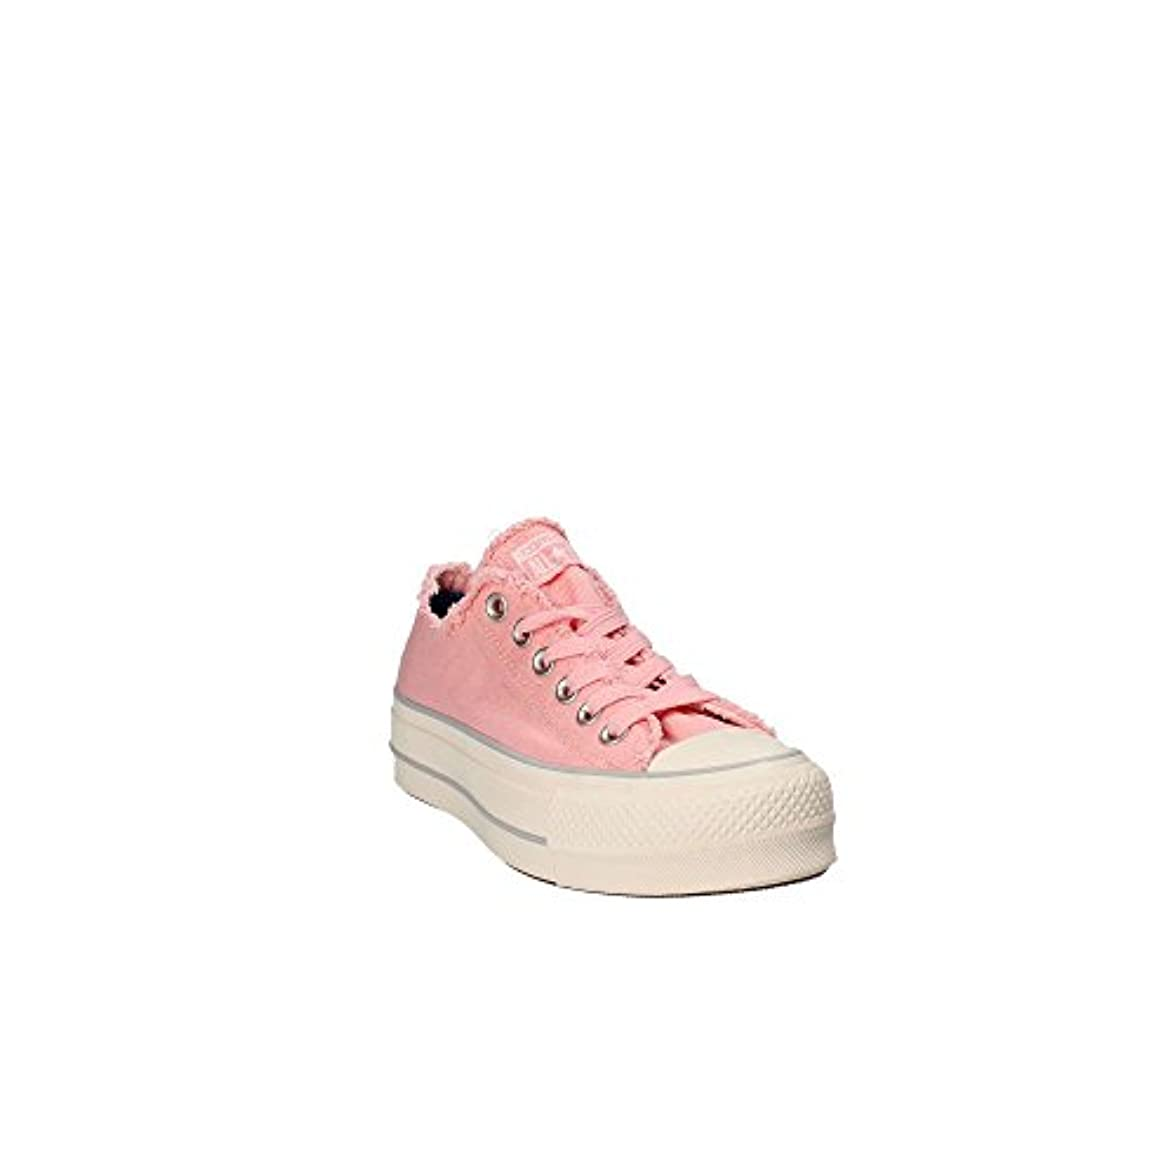 Converse 560948c Sneakers Donna